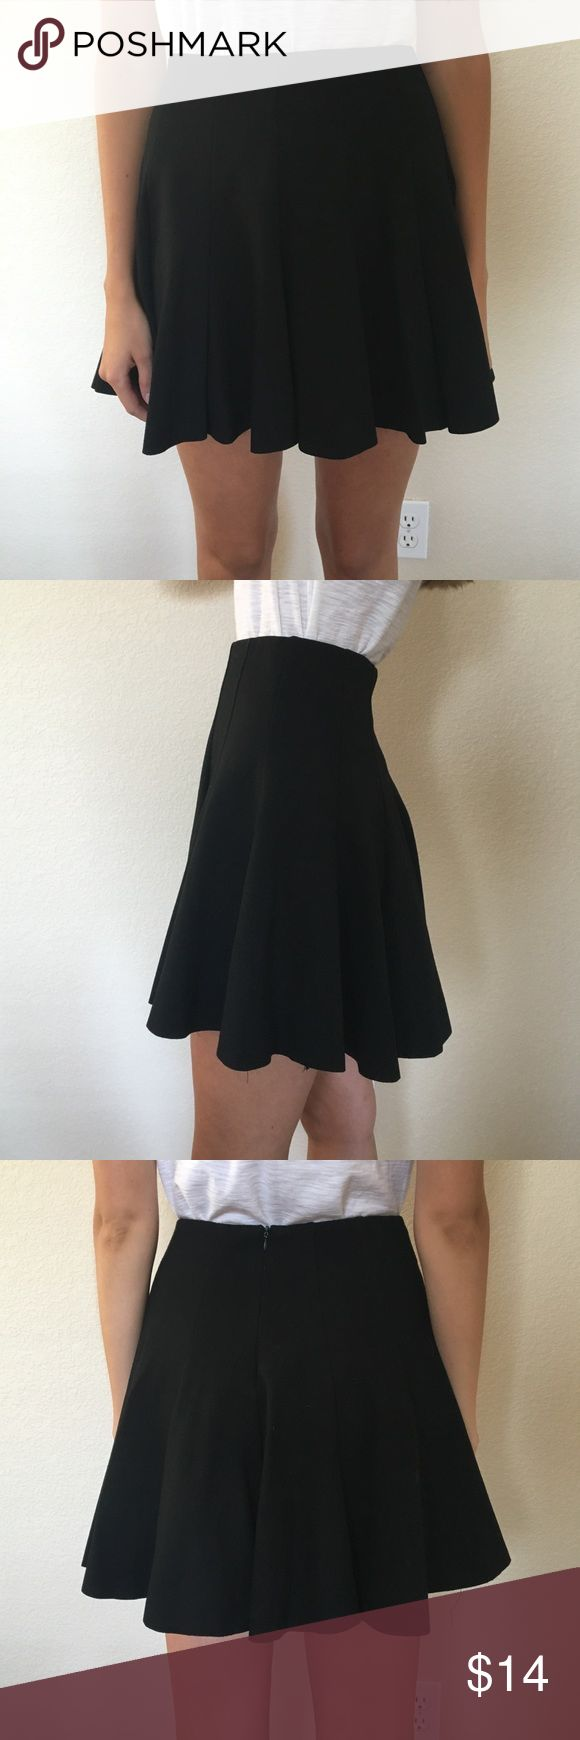 ASTR Classic Black Circle Skirt A great quality made classic black skirt staple. Made by ASTR, size small. In great condition. Astr Skirts Circle & Skater